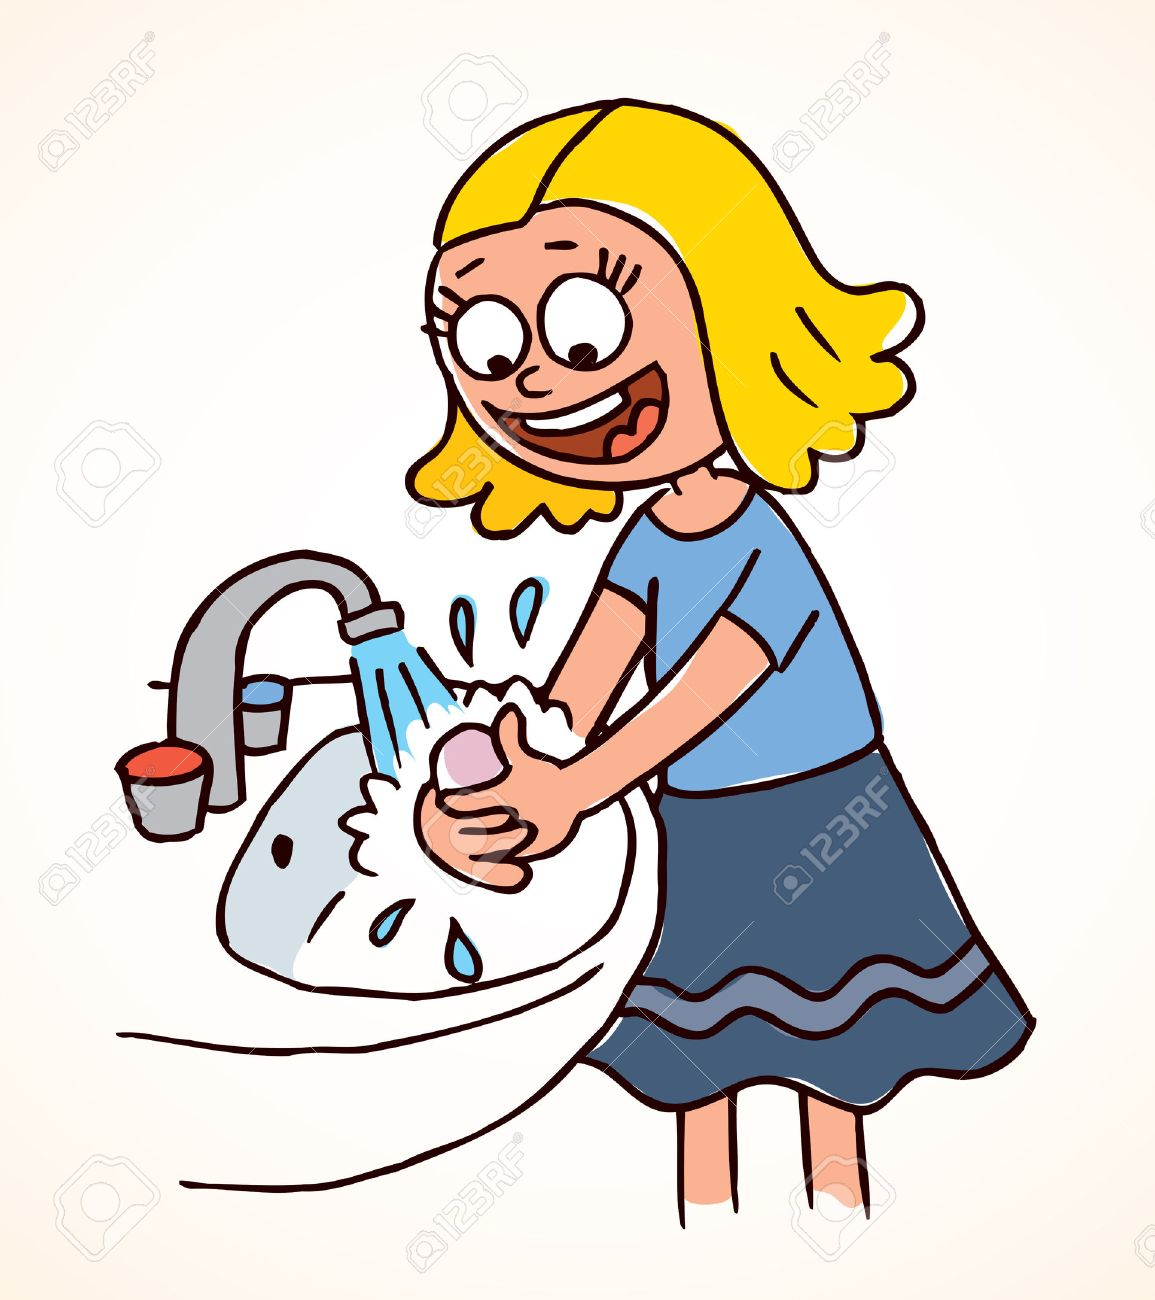 Wash your hands clipart clipart black and white Wash your hands clipart 5 » Clipart Station clipart black and white